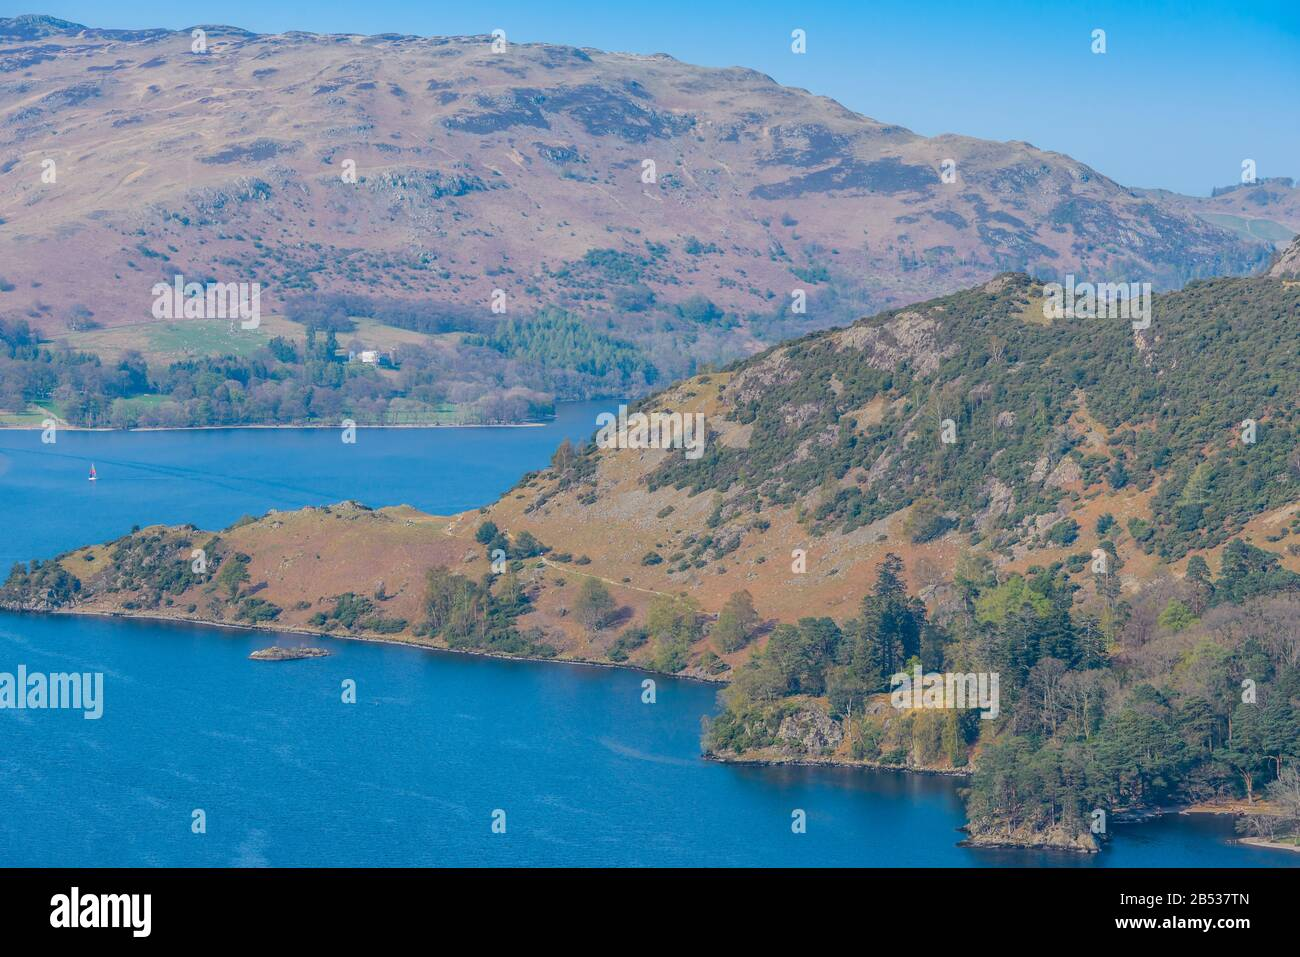 View of the southern part of Ullswater from Keldas, a hill above Glenridding and Patterdale in the Lake District on a clear April afternoon. Stock Photo